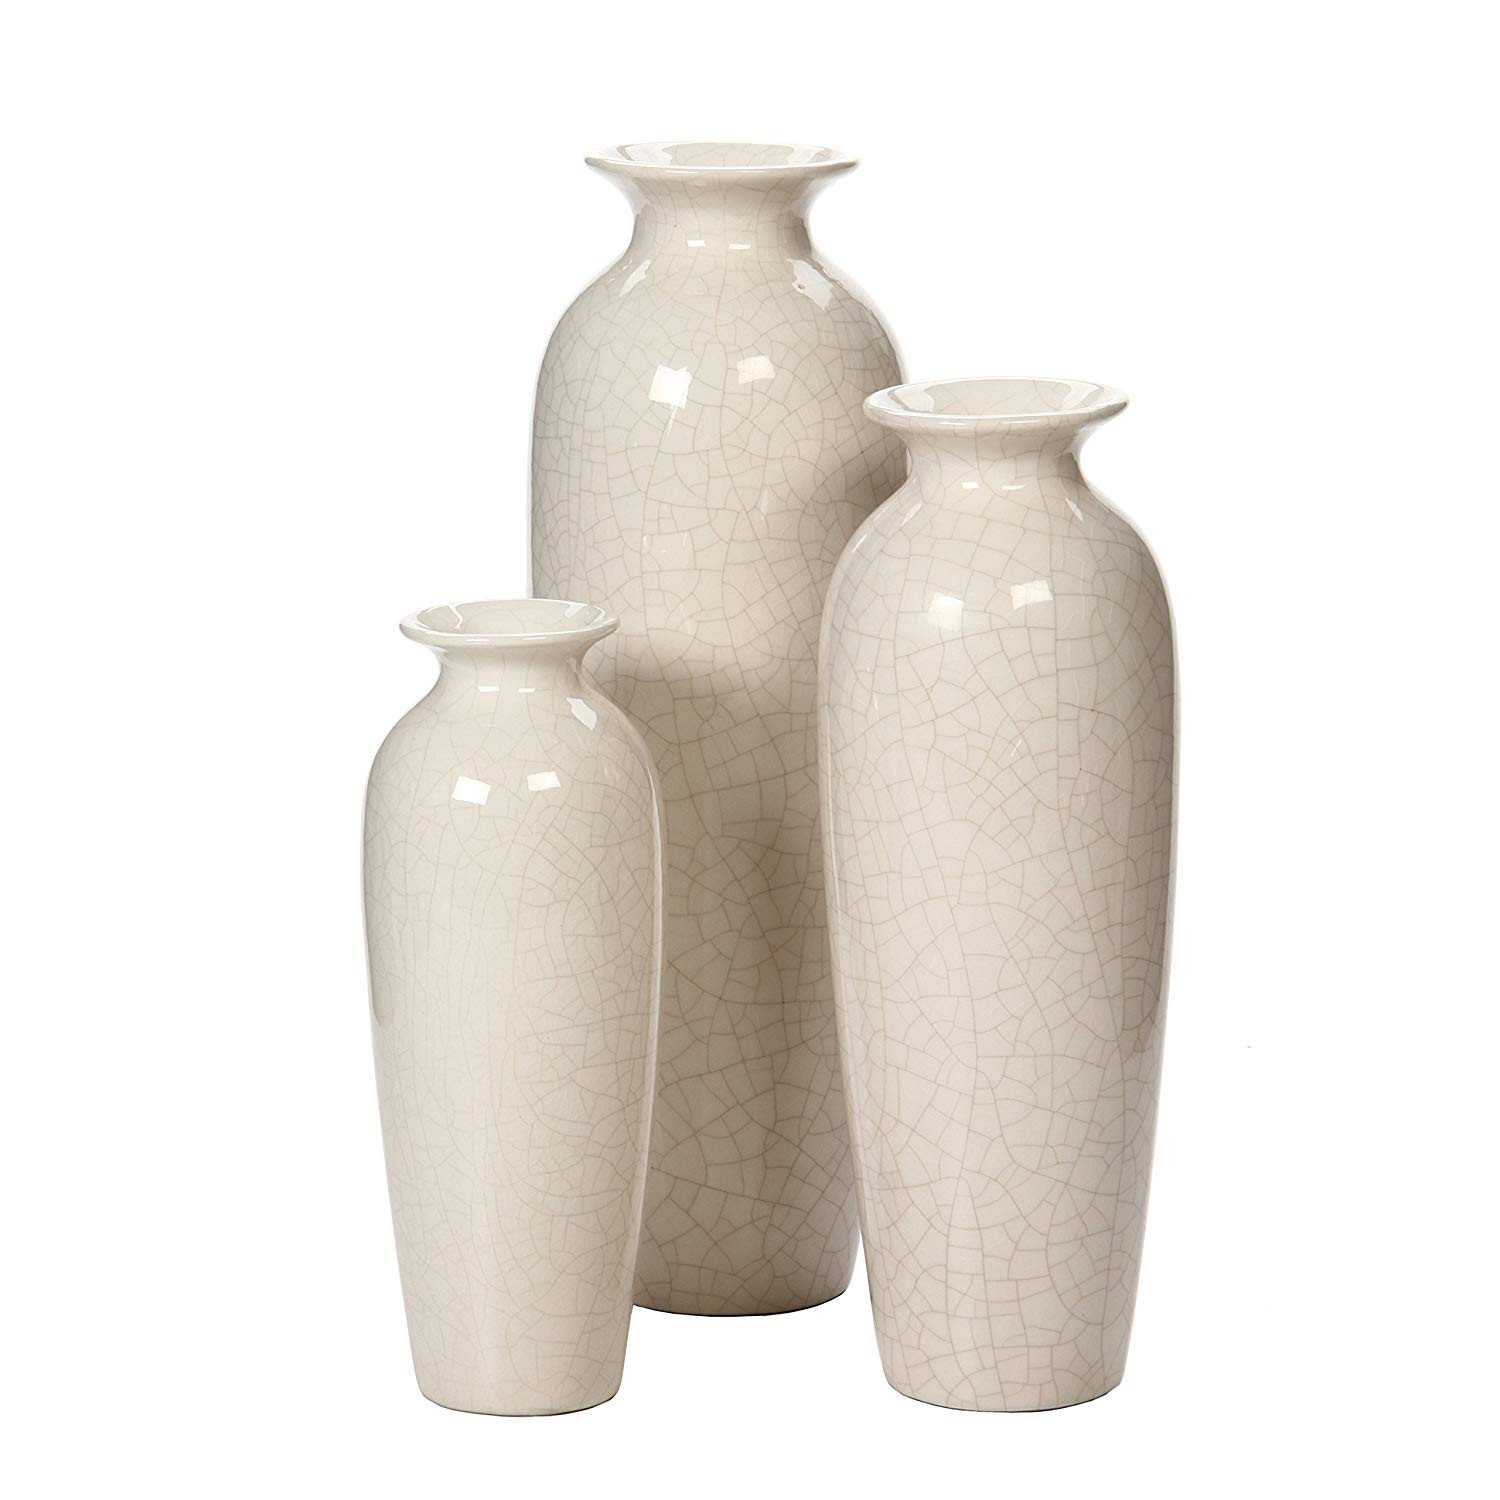 burl wood vase of amazon com hosley set of 3 crackle ivory ceramic vases in gift box with amazon com hosley set of 3 crackle ivory ceramic vases in gift box ideal gift for wedding or special occasions for use in home office decor